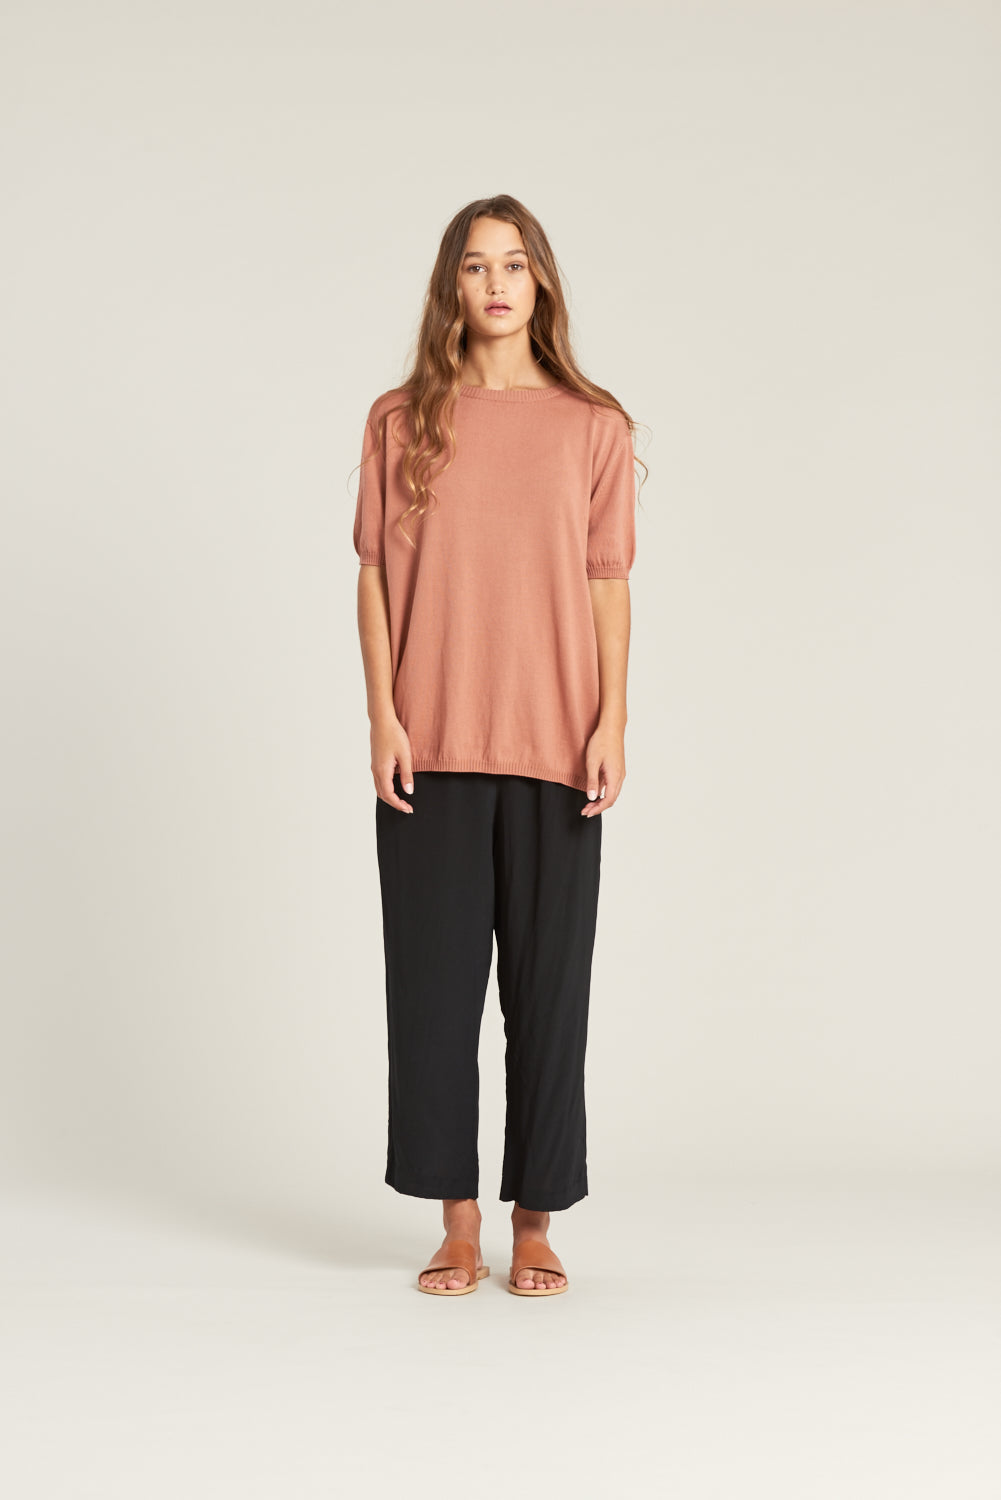 Relaxed fit organic cotton knitted top. Made in New Zealand.